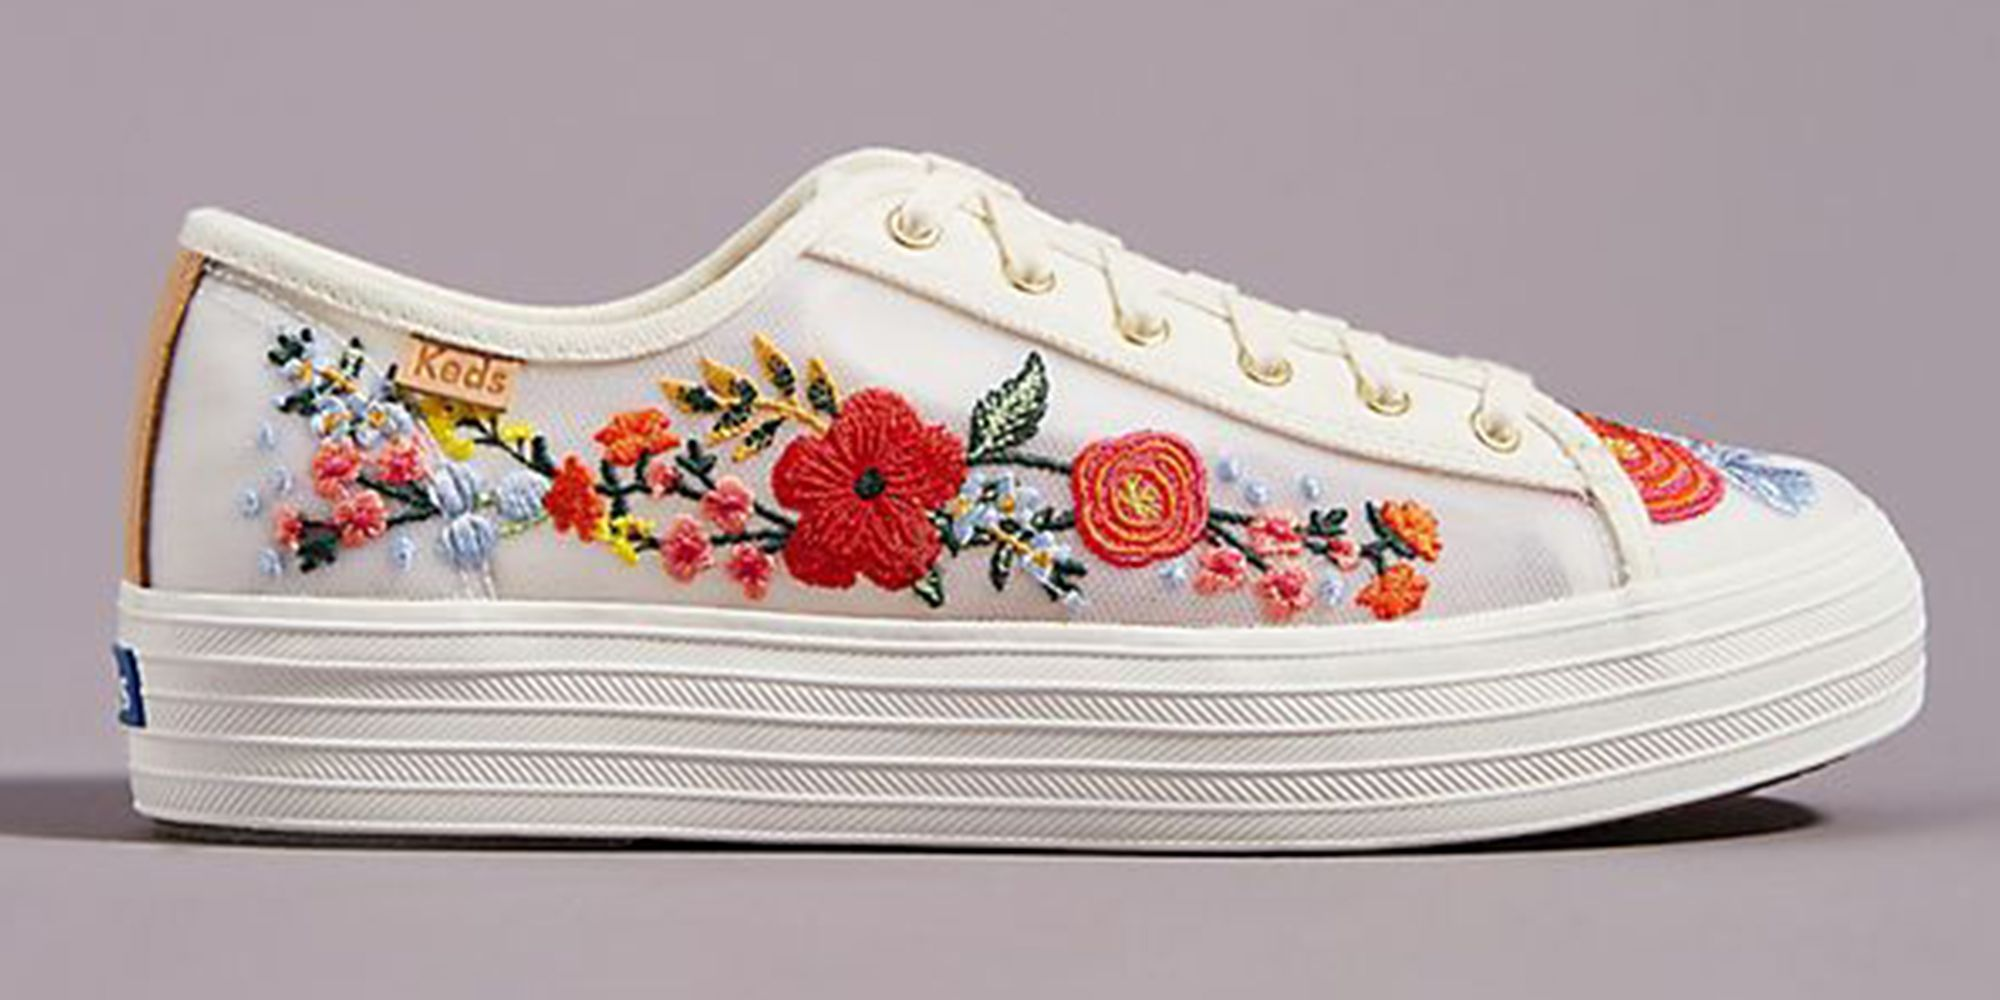 Keds' New White Sneakers Are